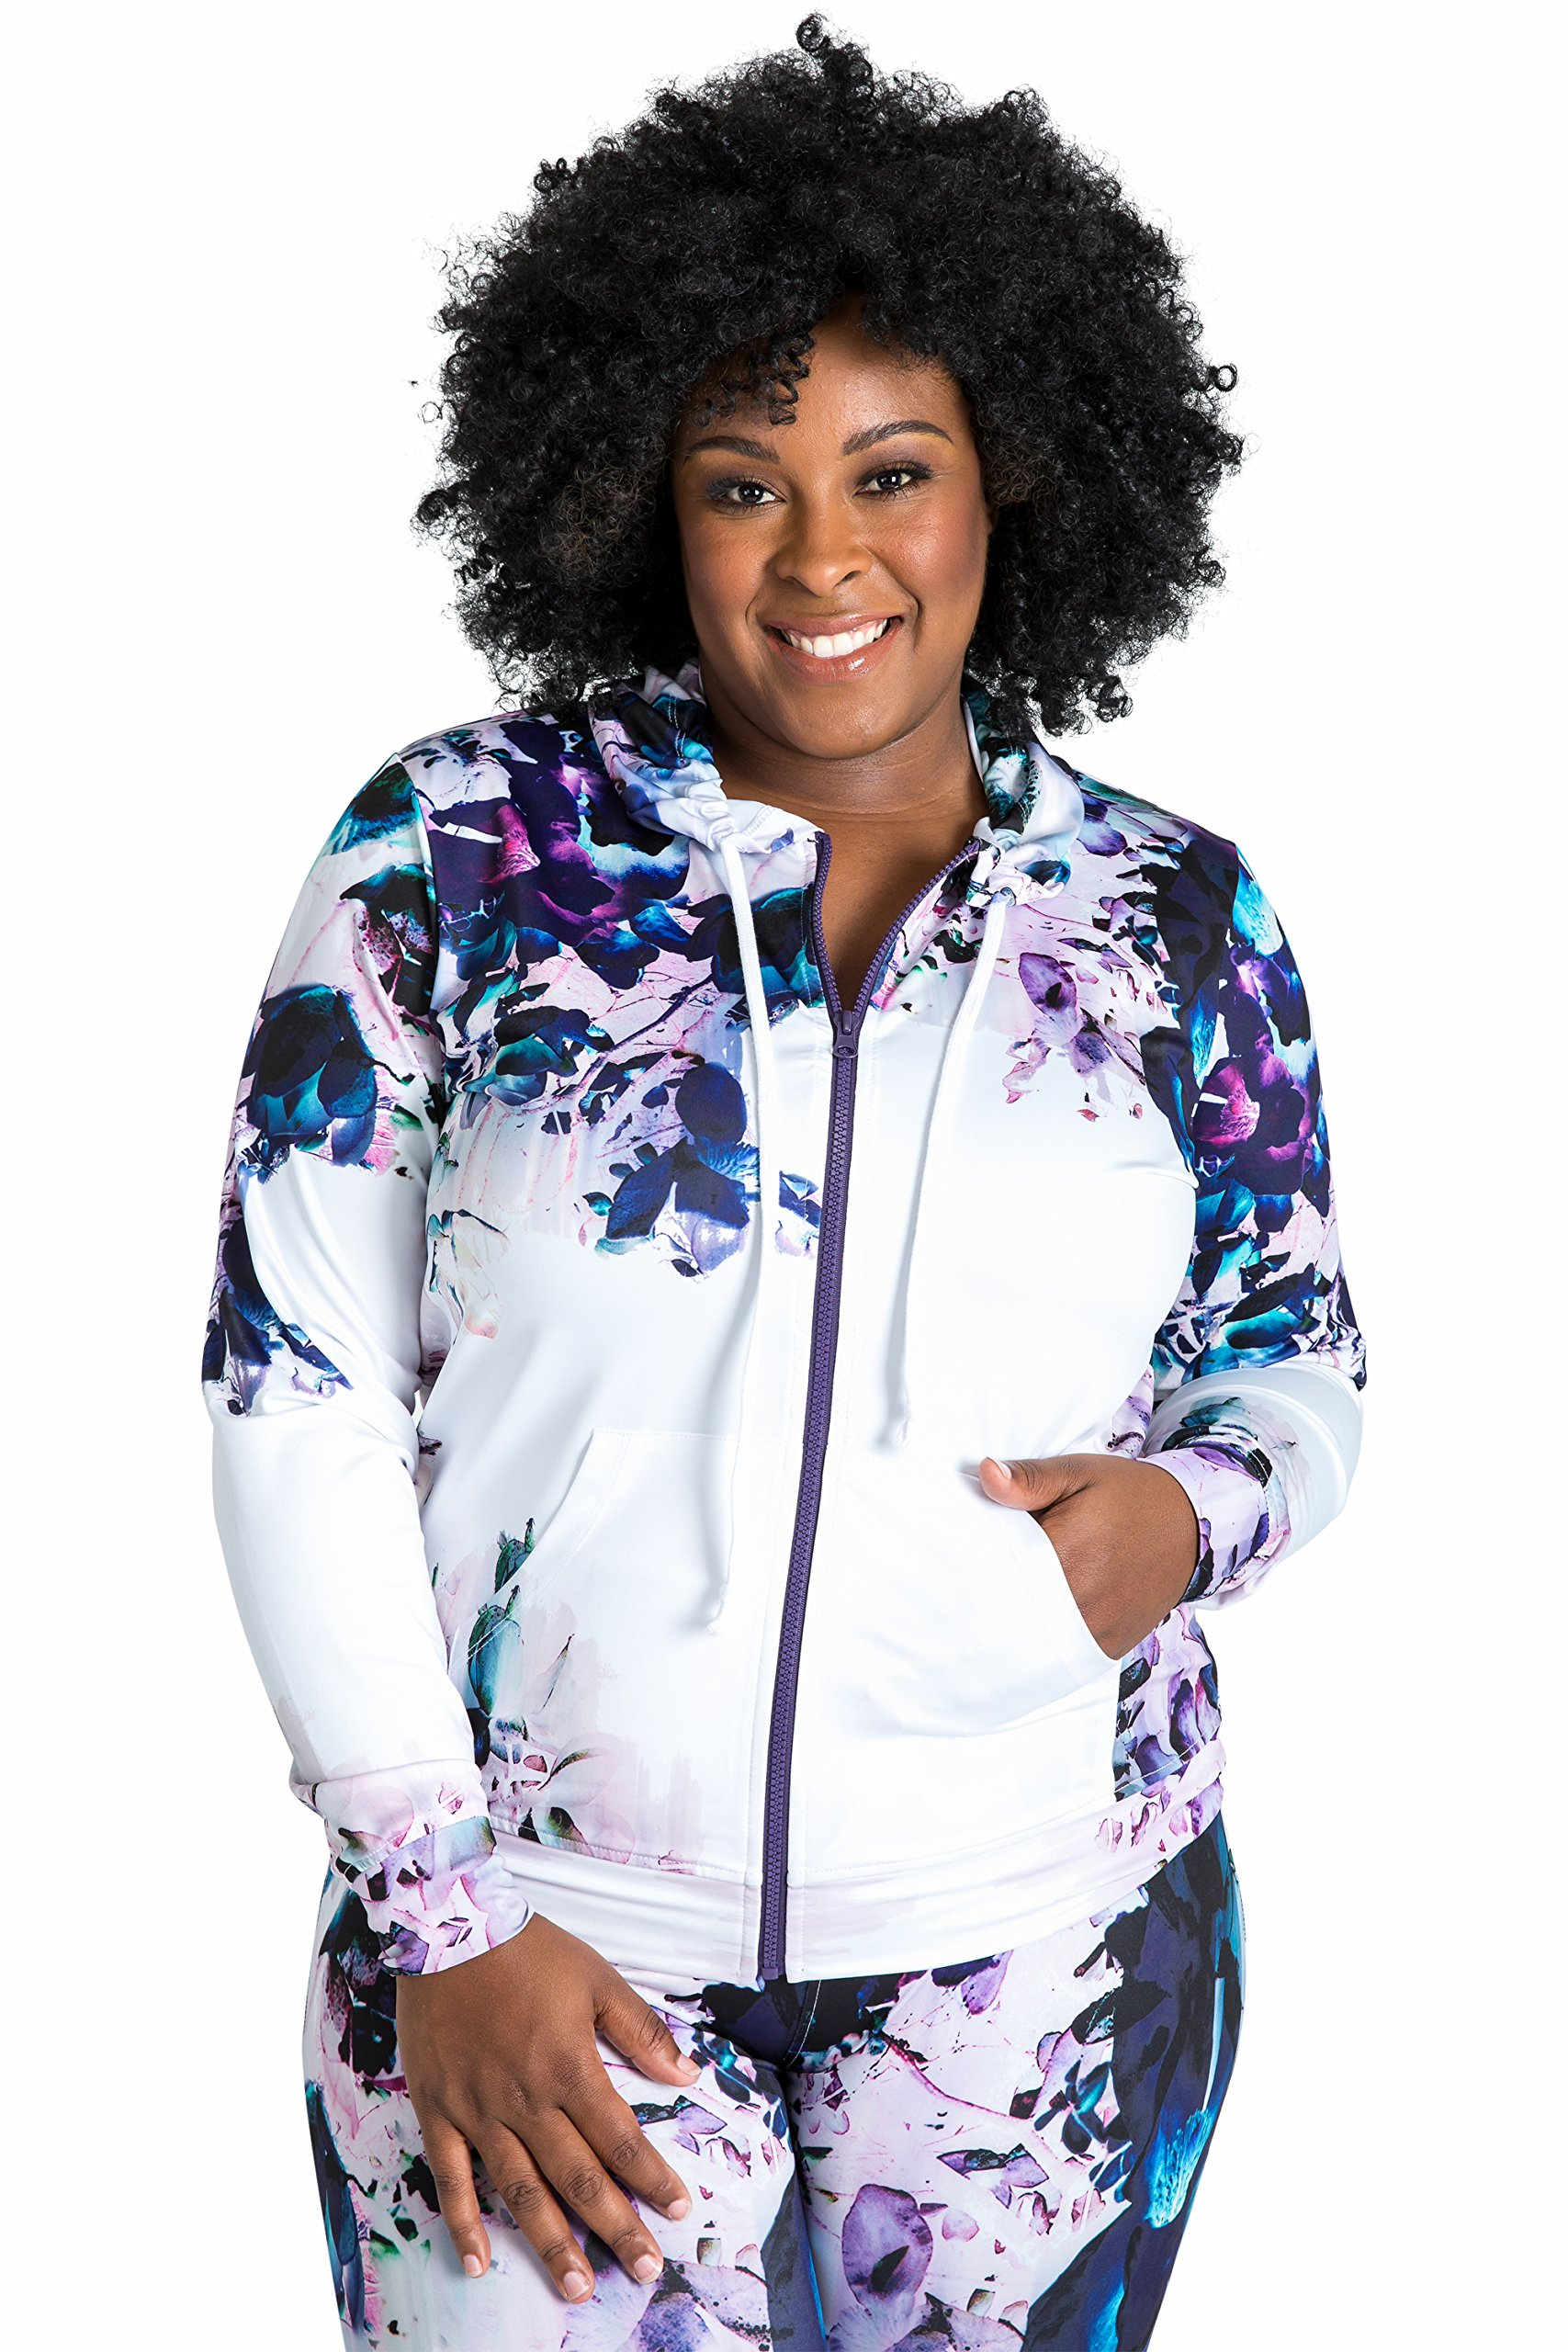 Poetic Justice Plus Size Women's Curvy Fit Active Zip-up Floral Print Poly Tricot Hoodie Size 3X